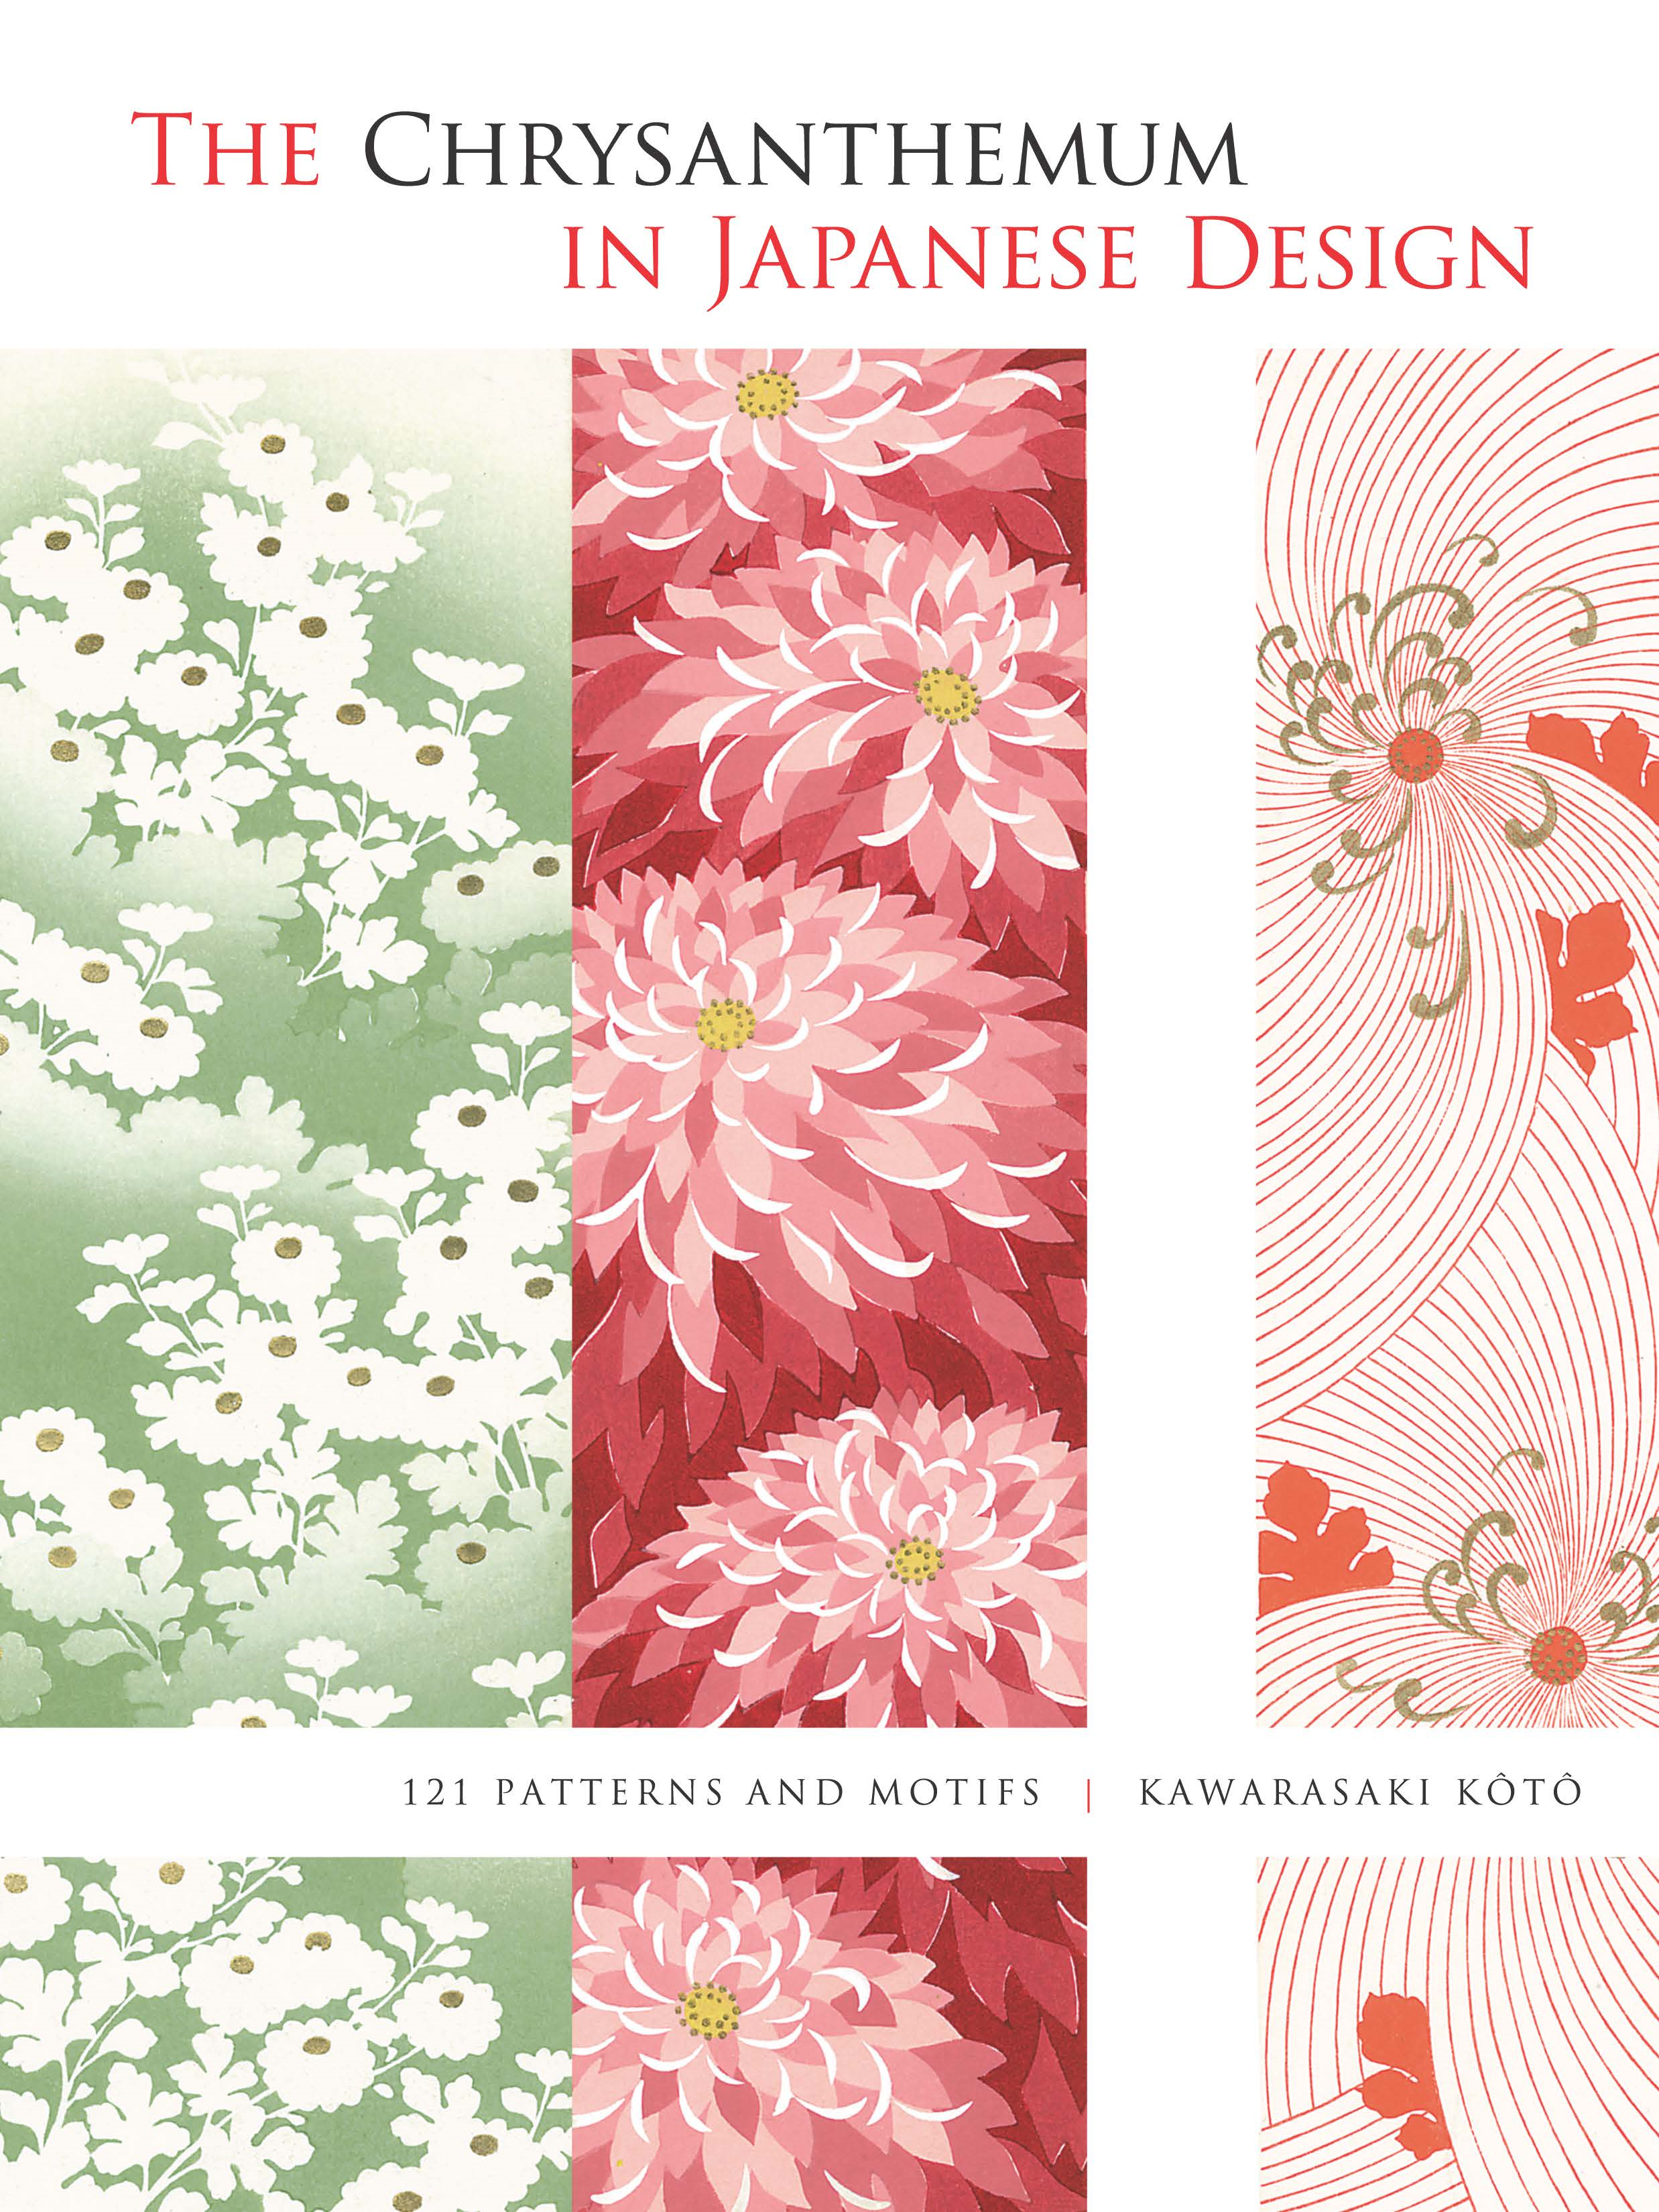 The Chrysanthemum in Japanese Design